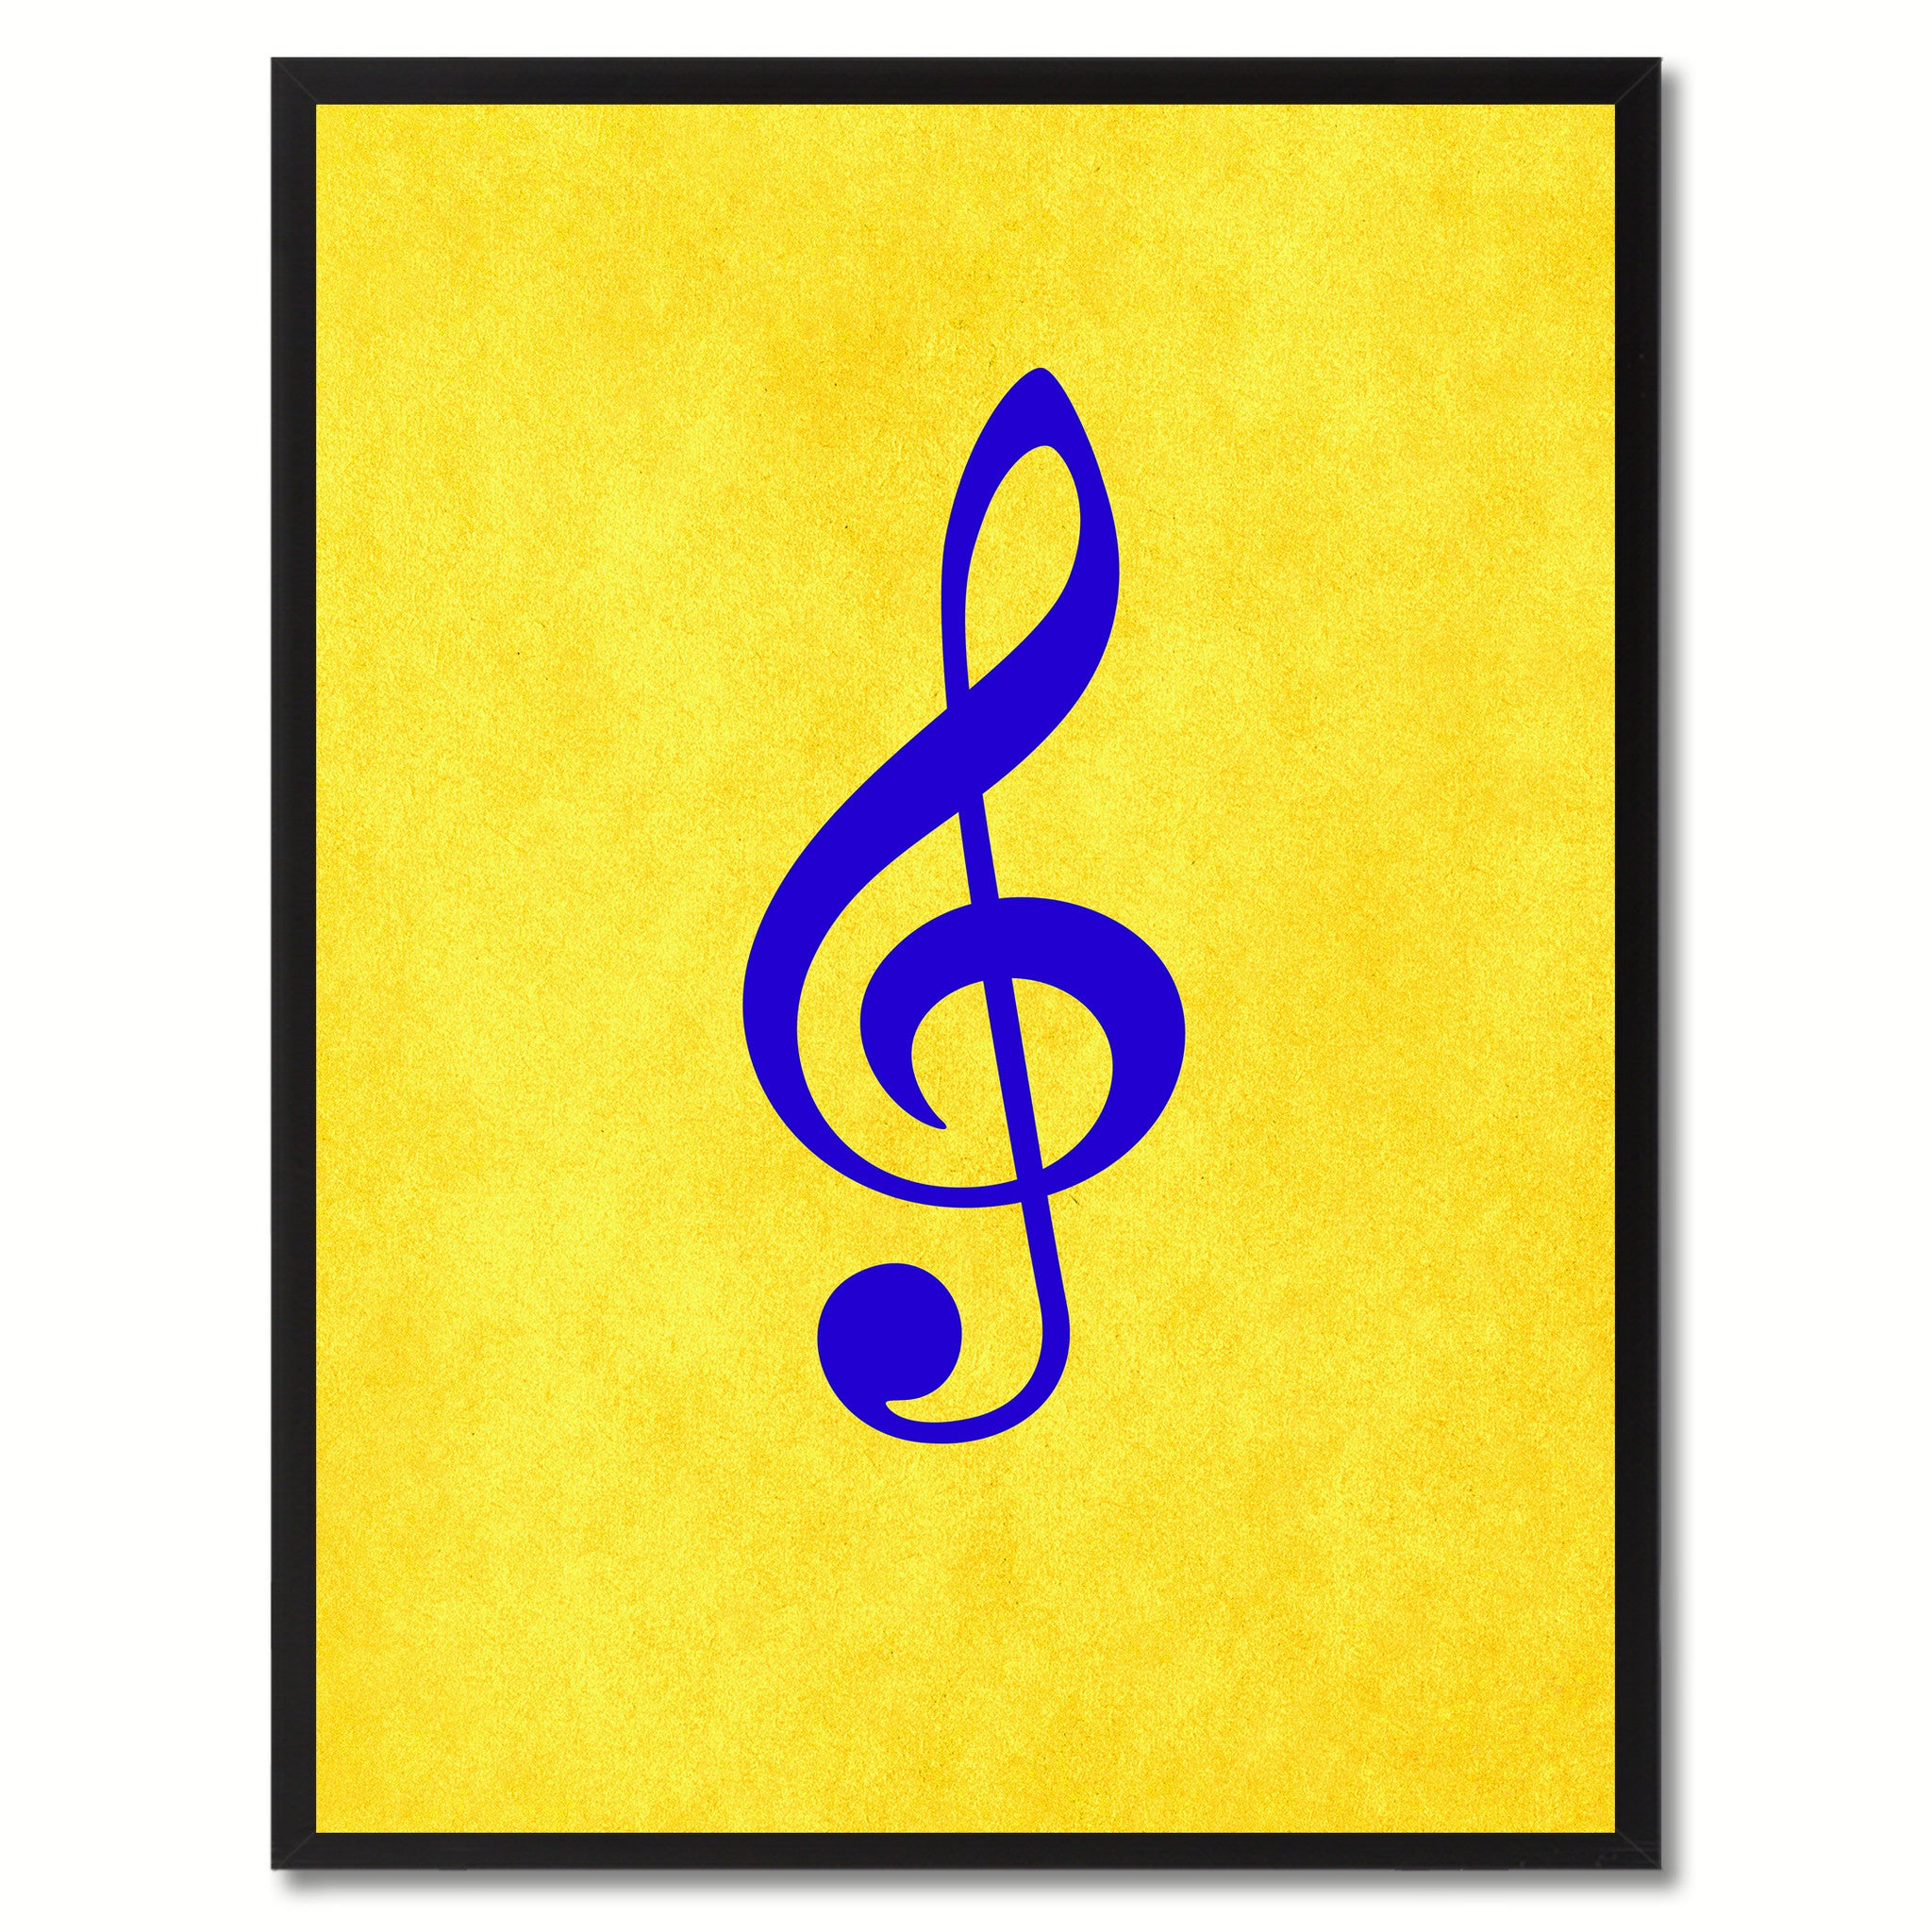 Treble Music Yellow Canvas Print Pictures Frames Office Home Décor Wall Art Gifts